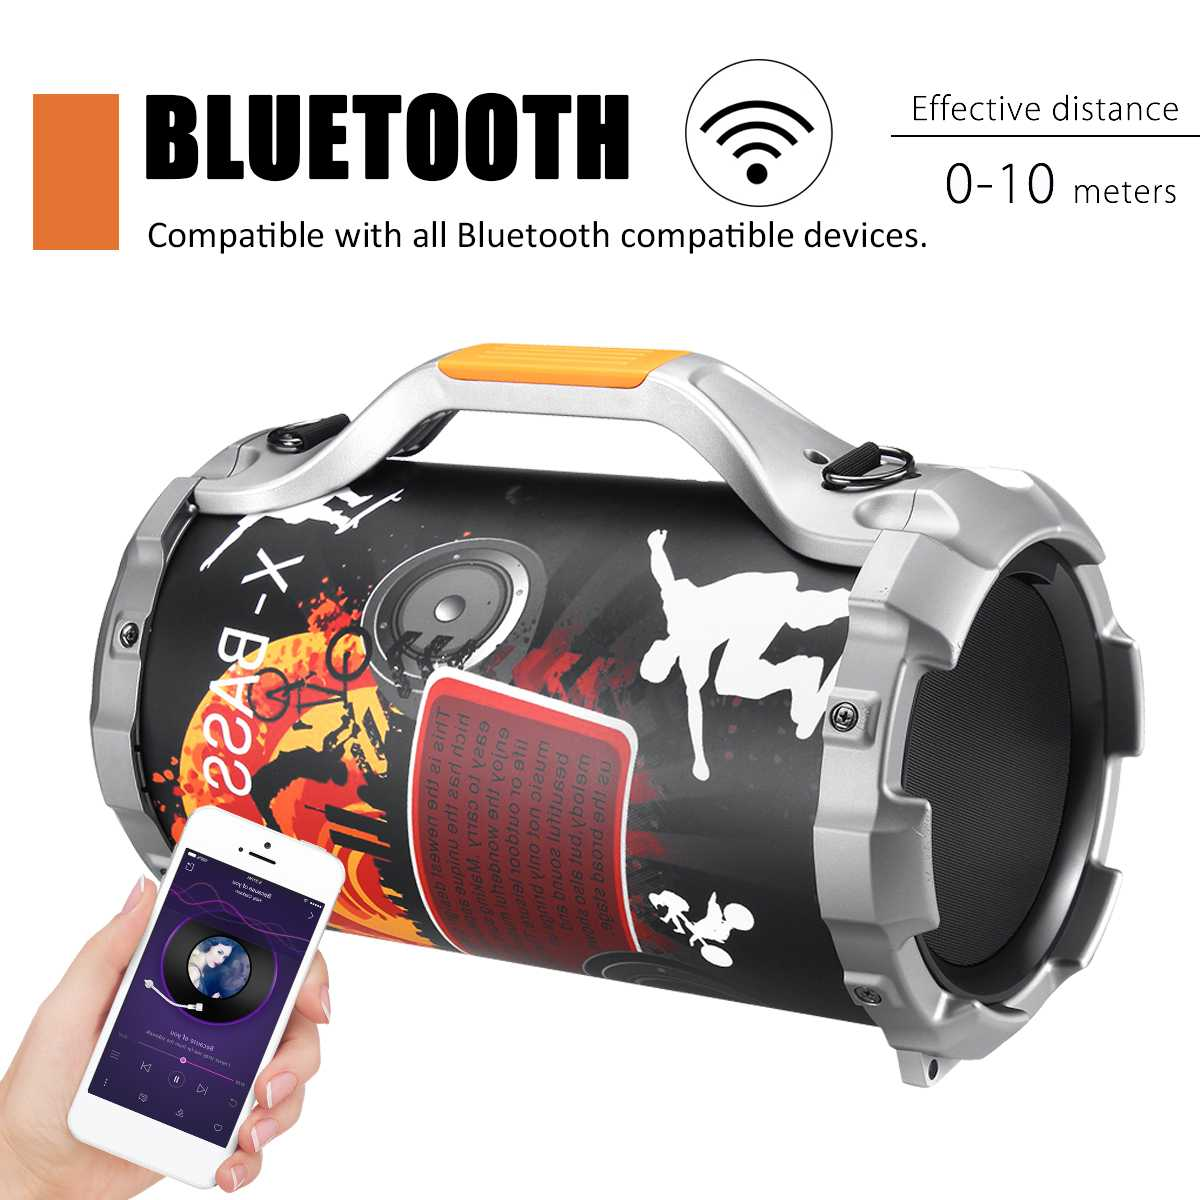 Portable Outdoor Wireless bluetooth Power Speaker Stereo Bass Subwoofer Karaoke DJ Loud Music Player +Microphone FM USB AUX SDPortable Outdoor Wireless bluetooth Power Speaker Stereo Bass Subwoofer Karaoke DJ Loud Music Player +Microphone FM USB AUX SD